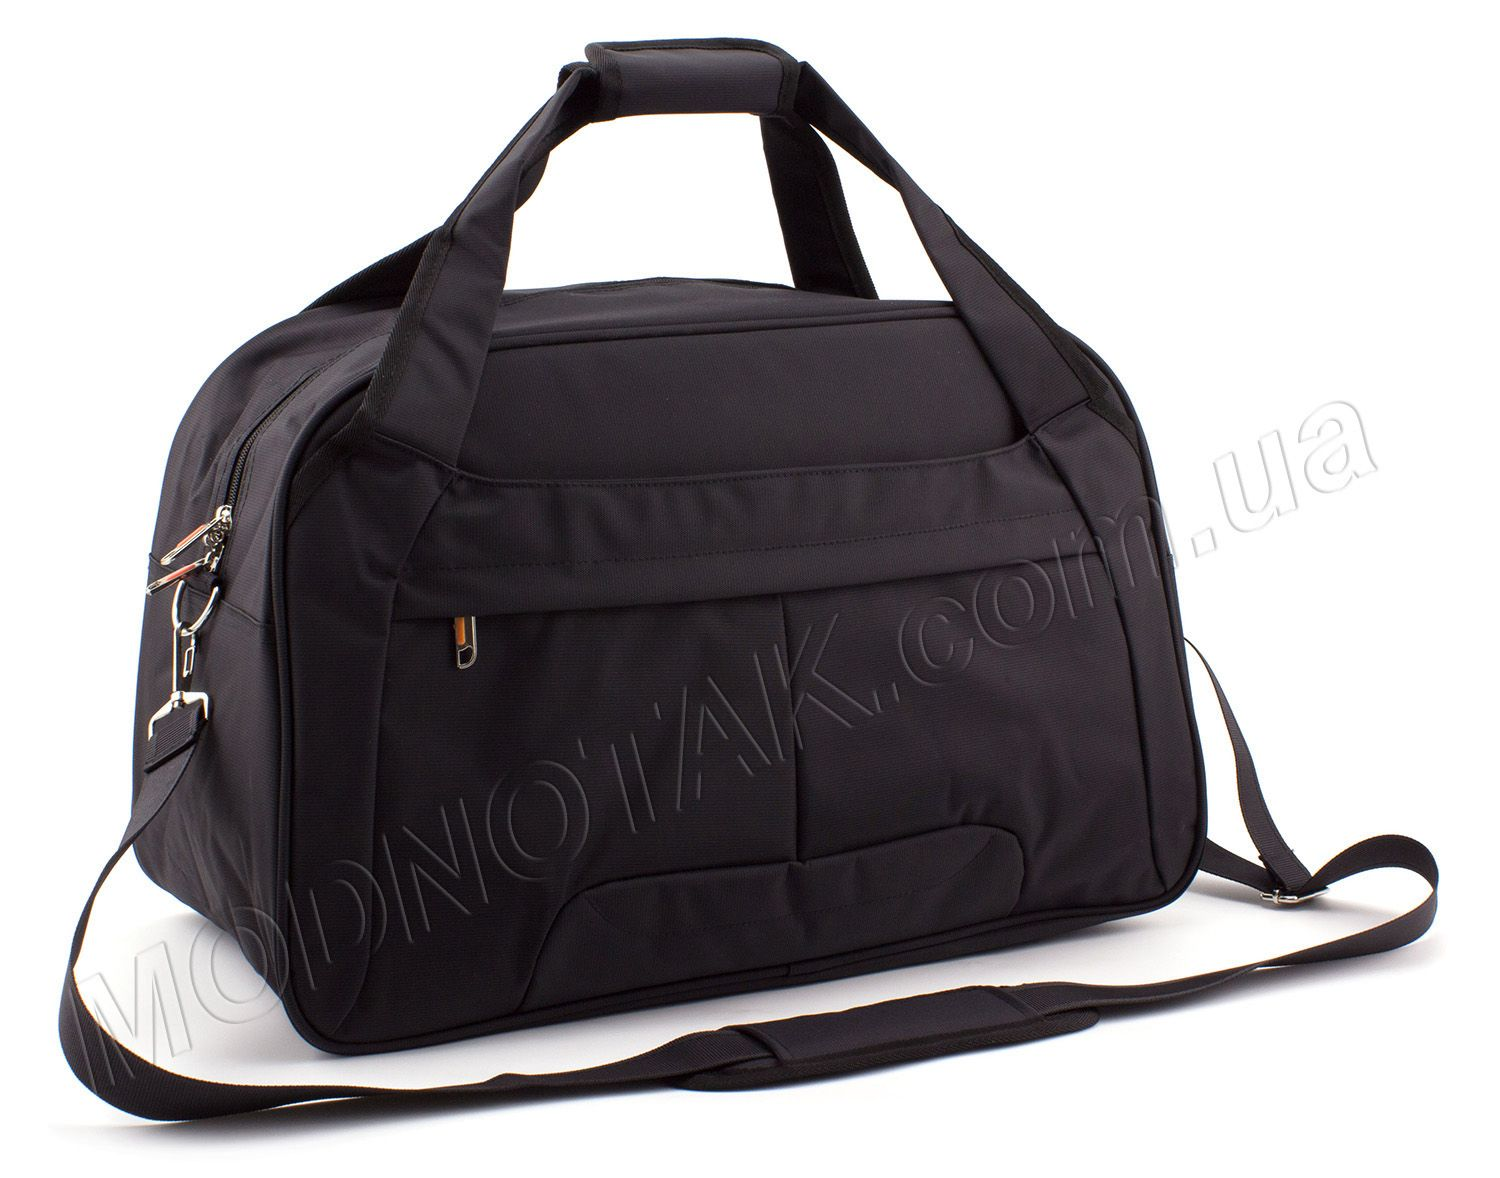 709366c2995a Спортивная мужская сумка без логотипов и надписей Bags Collection (10601)